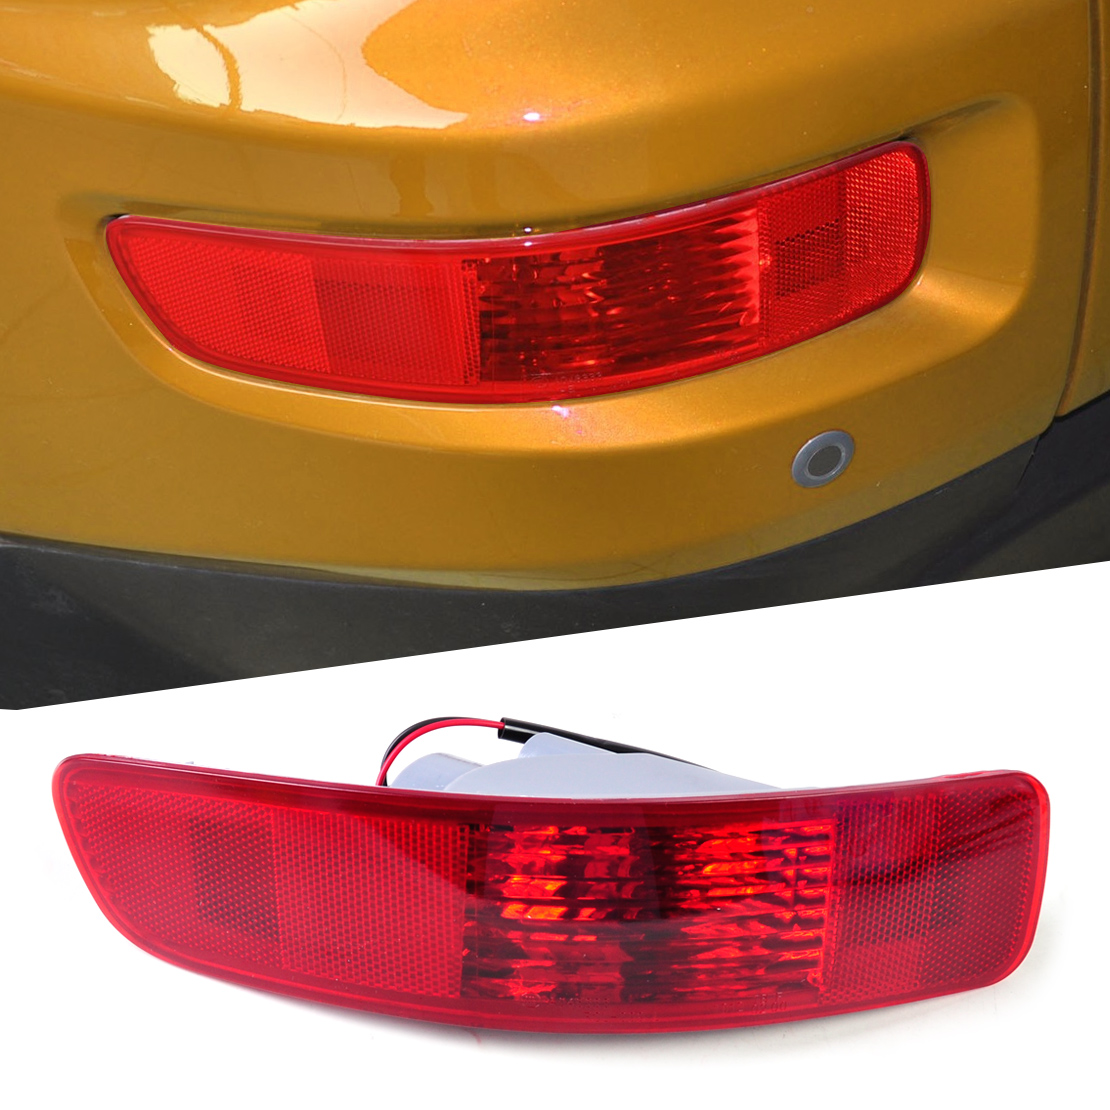 beler Rear Fog Lamp Light Left Side SL693-LH Fit for Mitsubishi Outlander 2007 2008 2009 2010 2011 2012 2013 SL693 beler rear left side fog light bumper lamp reflector sl693 lh fit for mitsubishi outlander 2007 2008 2009 2010 2011 2012 2013